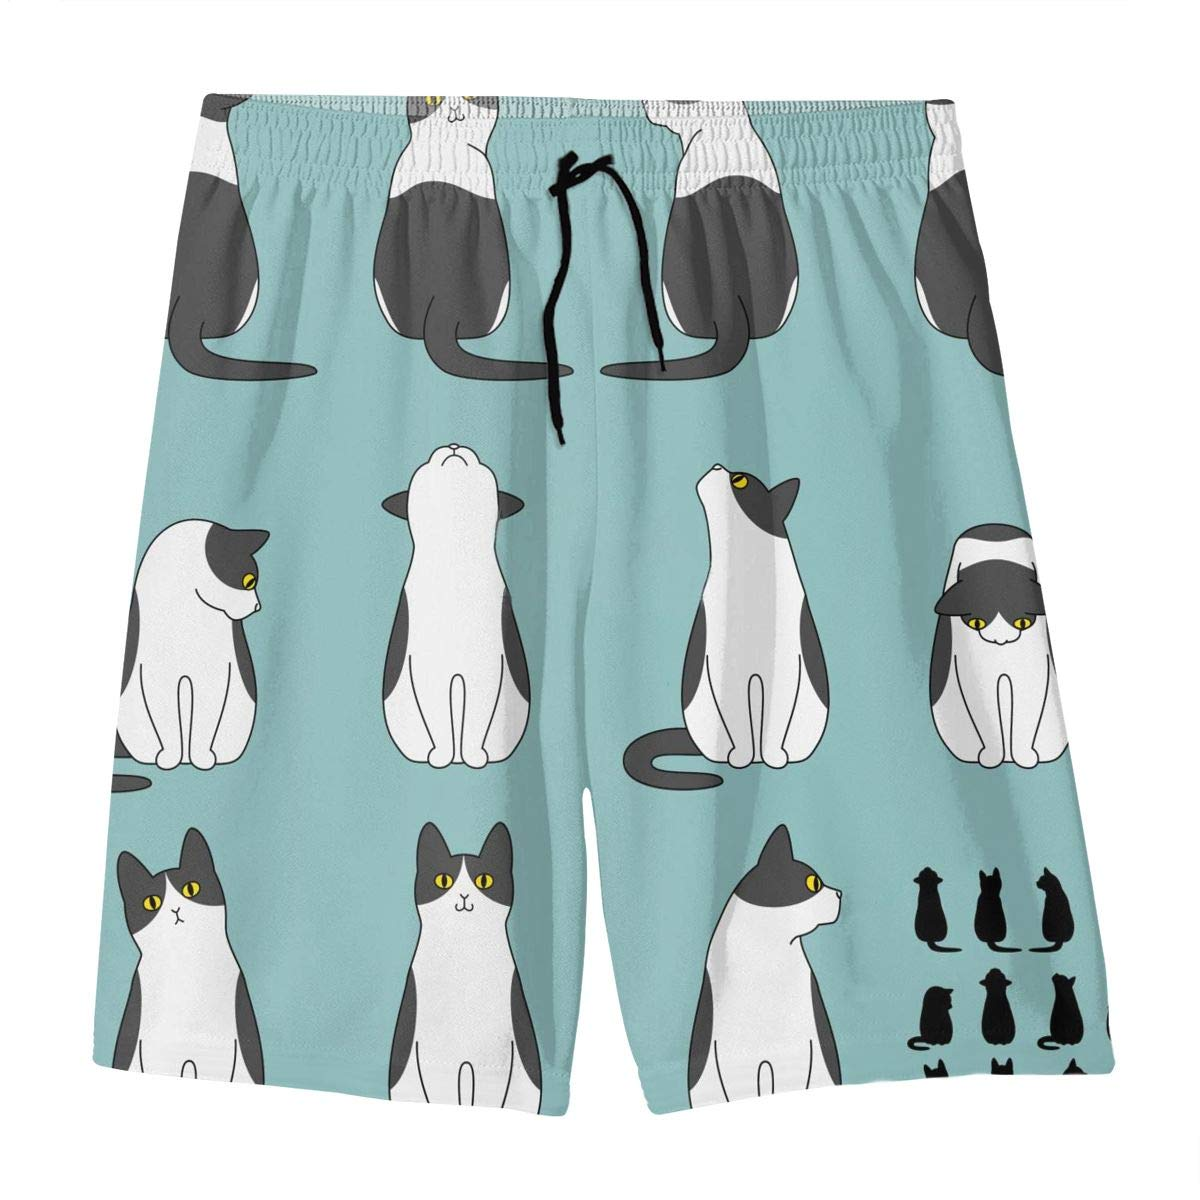 Mens Swim Trunks Set of Cat Sitting Poses Printed Beach Board Shorts with Pockets Cool Novelty Bathing Suits for Teen Boys